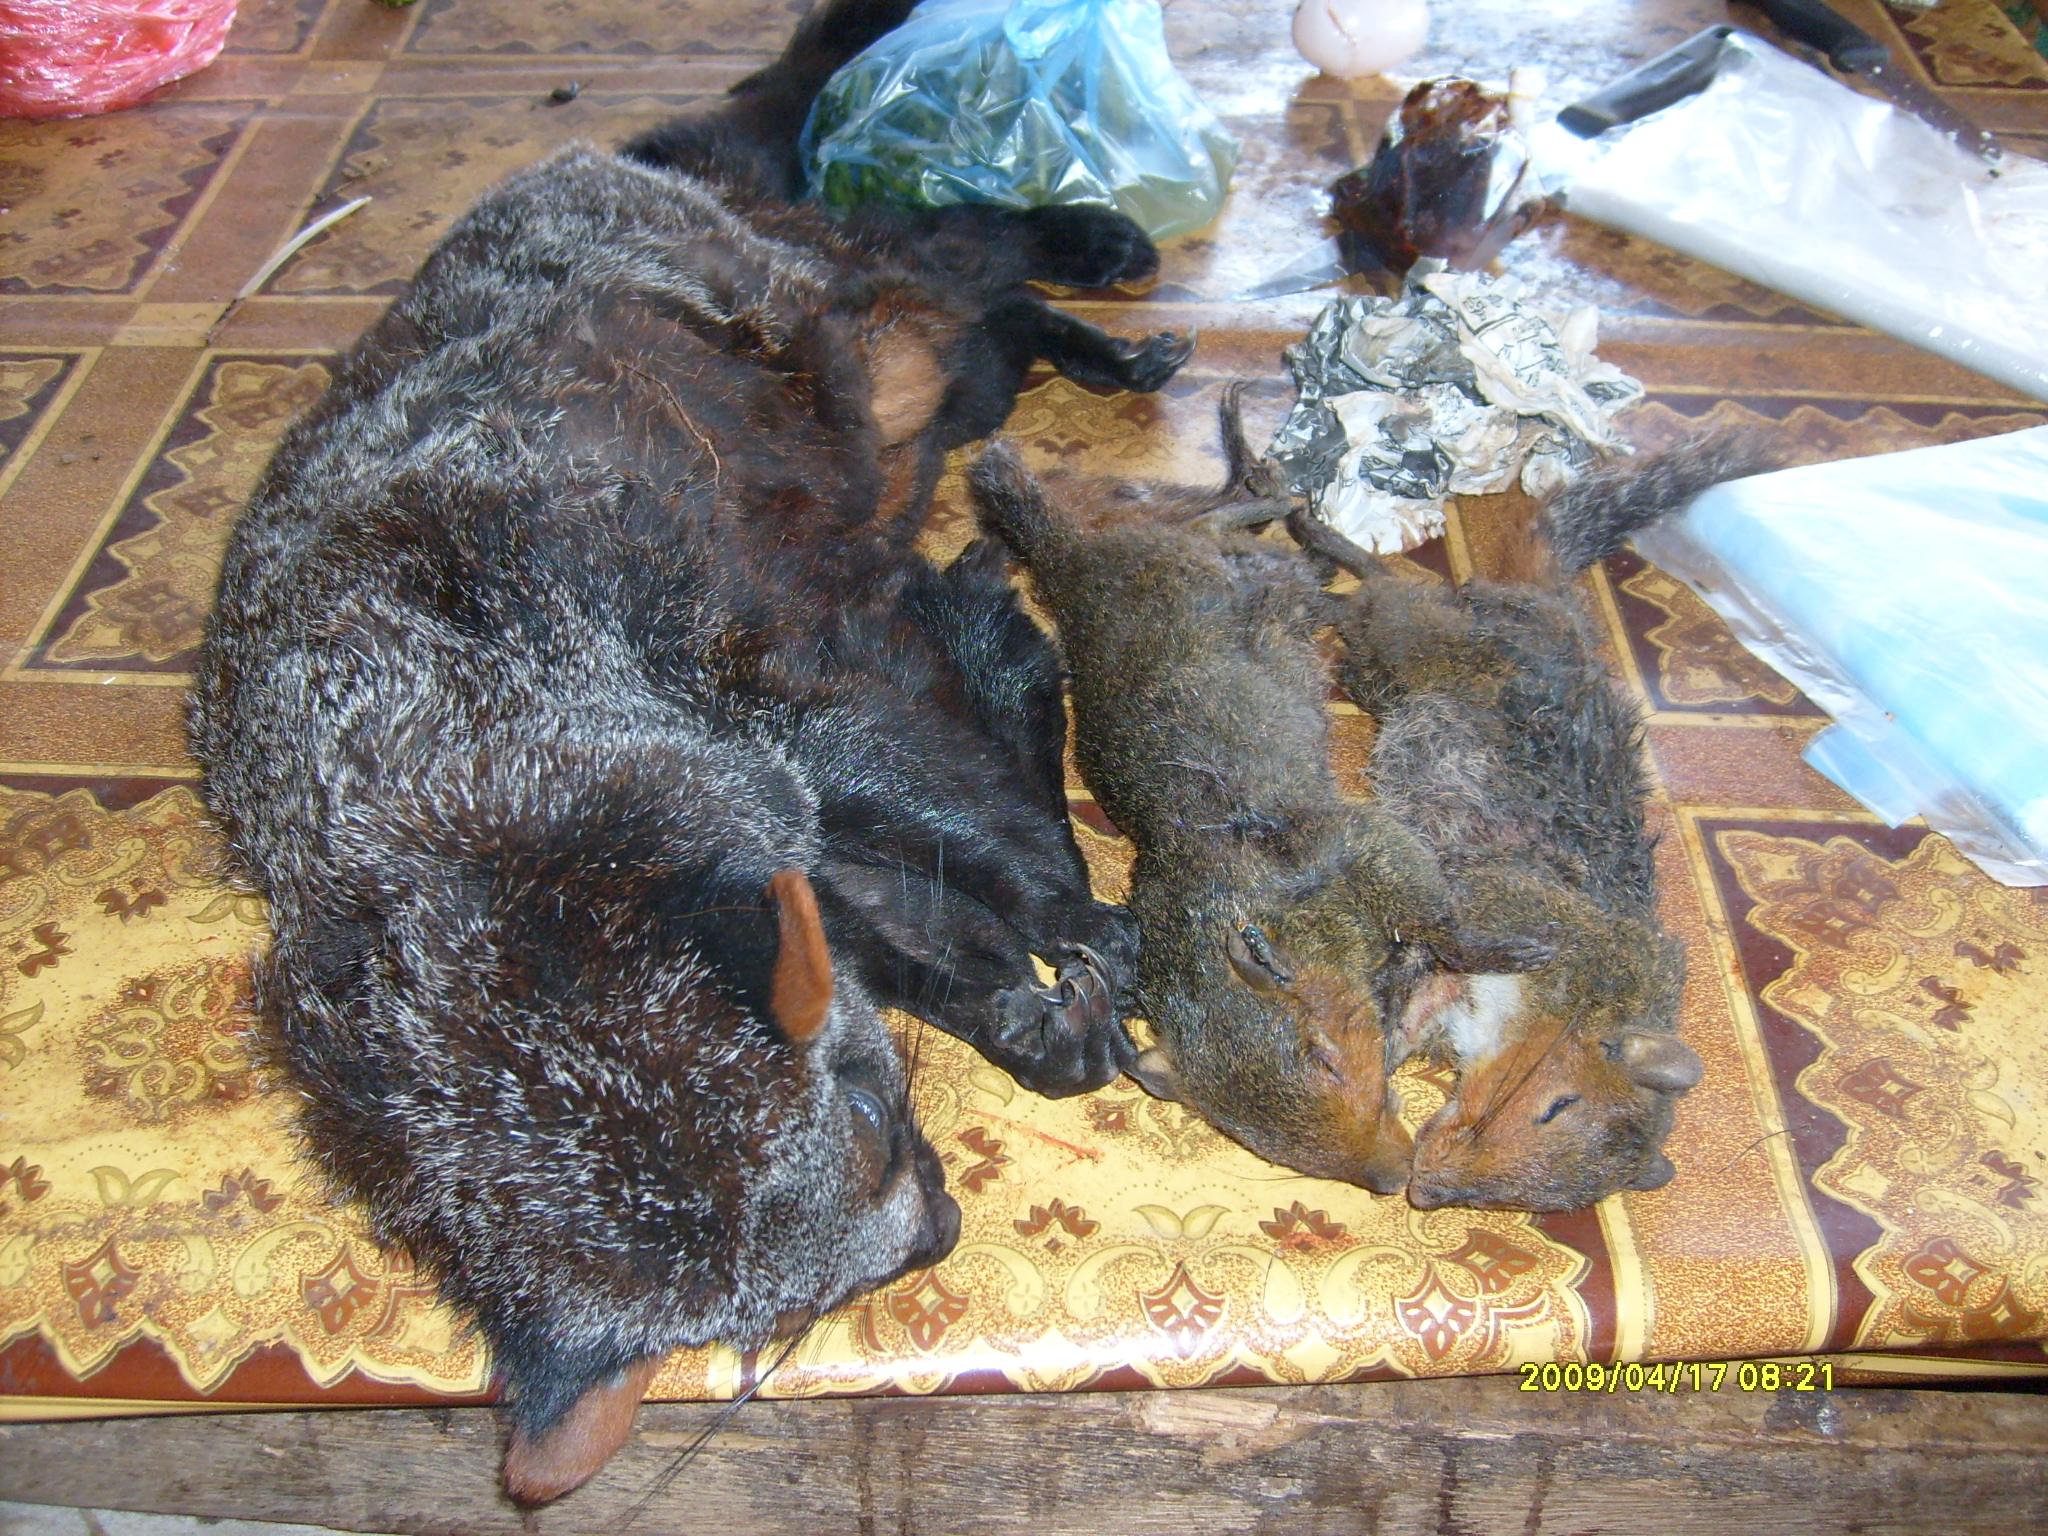 Lemurs, squirrels, porcupines, roosters, dogs, and other animals could be found, completely intact, lying on tables everywhere. Most of them had likely been shot the day before.